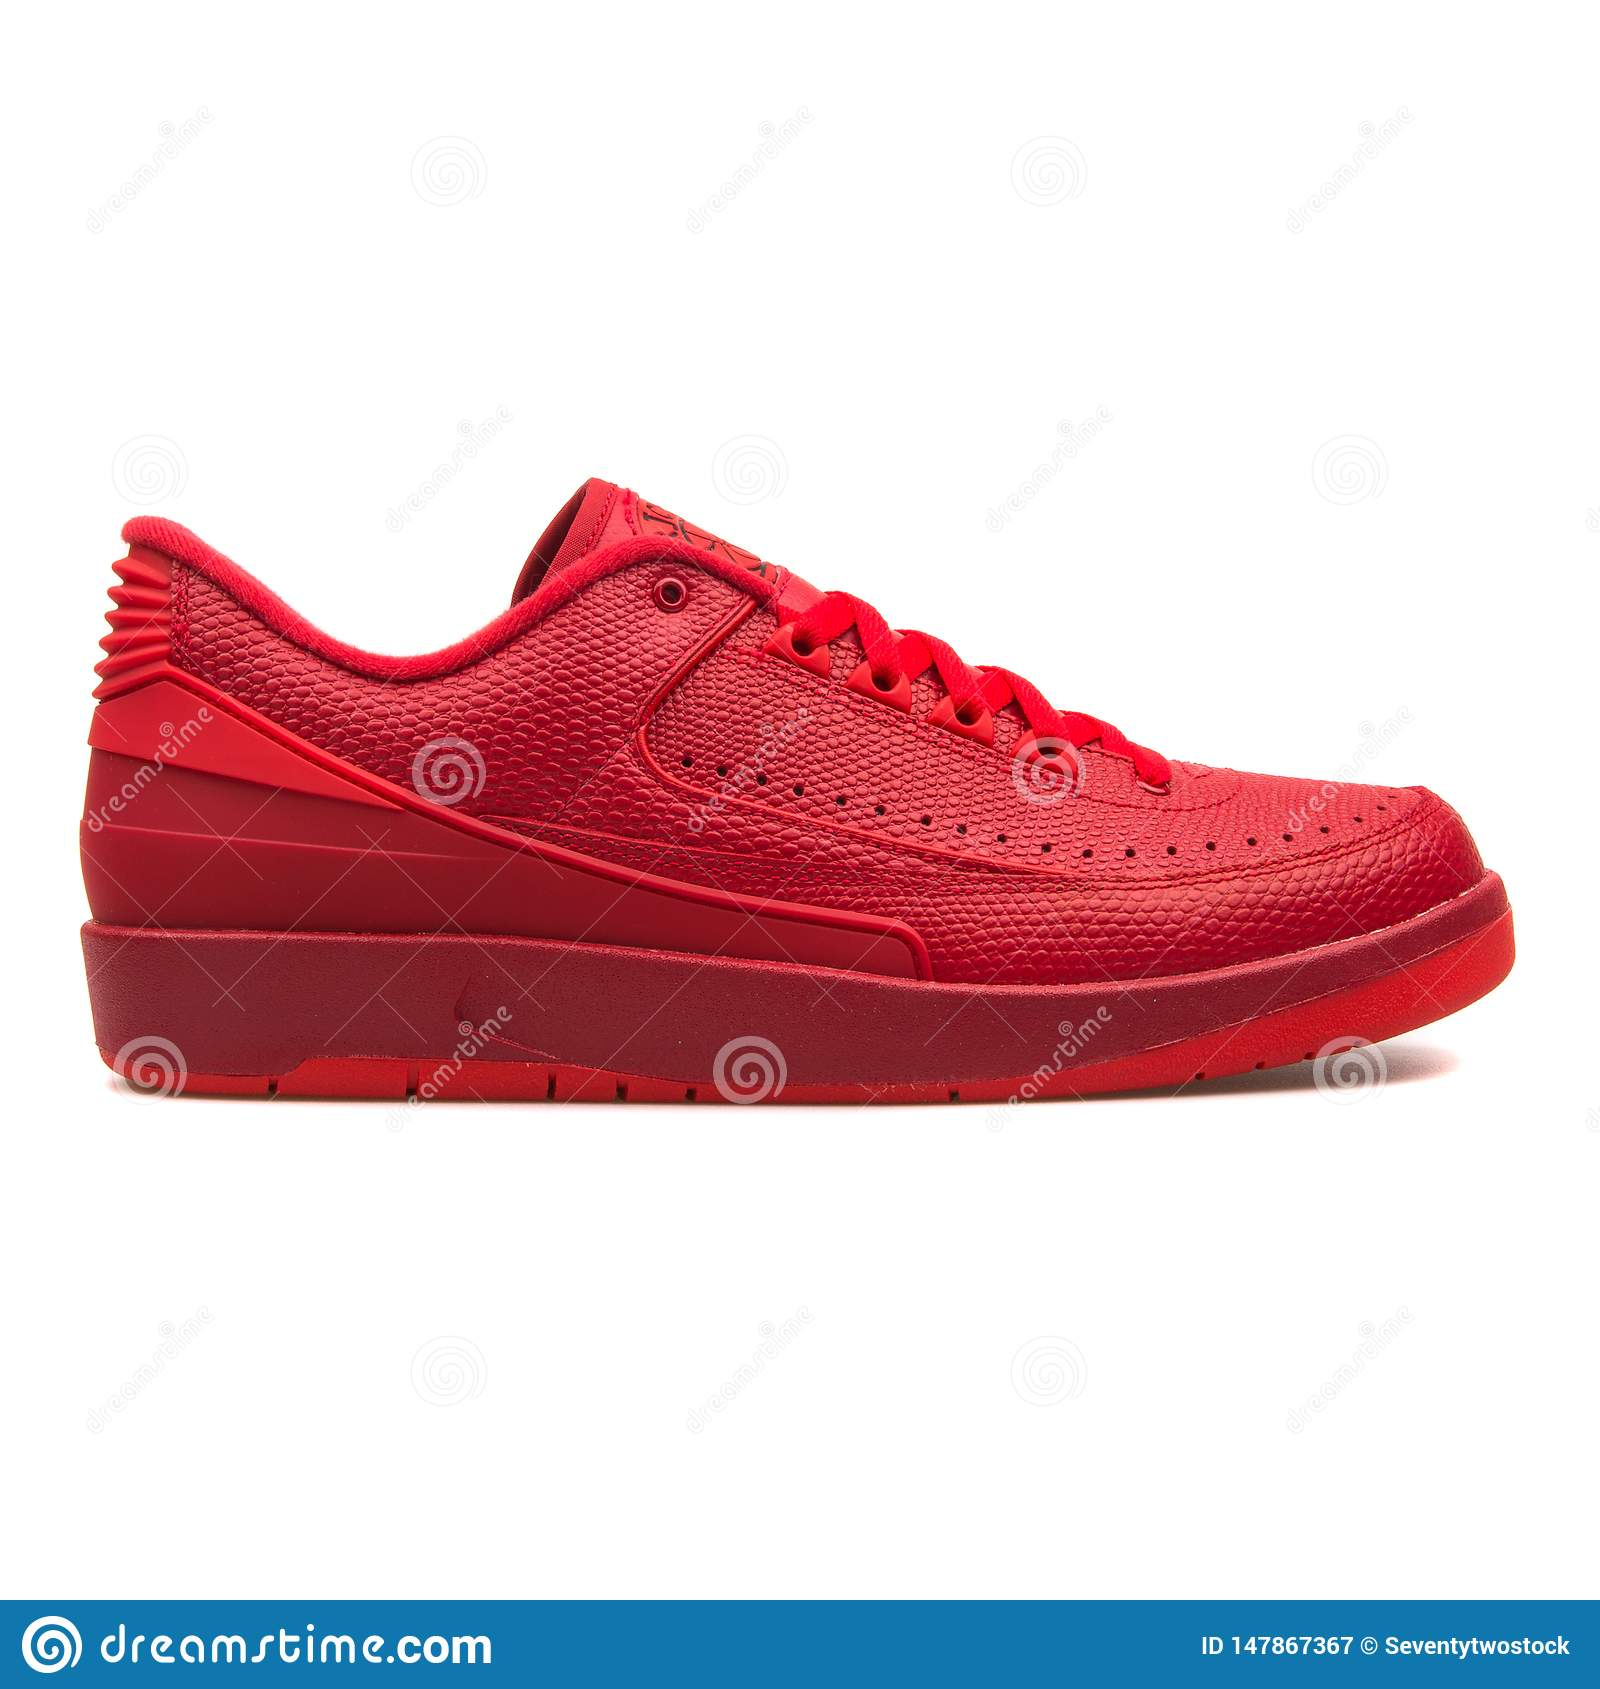 ebb07f17445 Nike Air Jordan 2 Retro Low Red Sneaker Editorial Photography ...